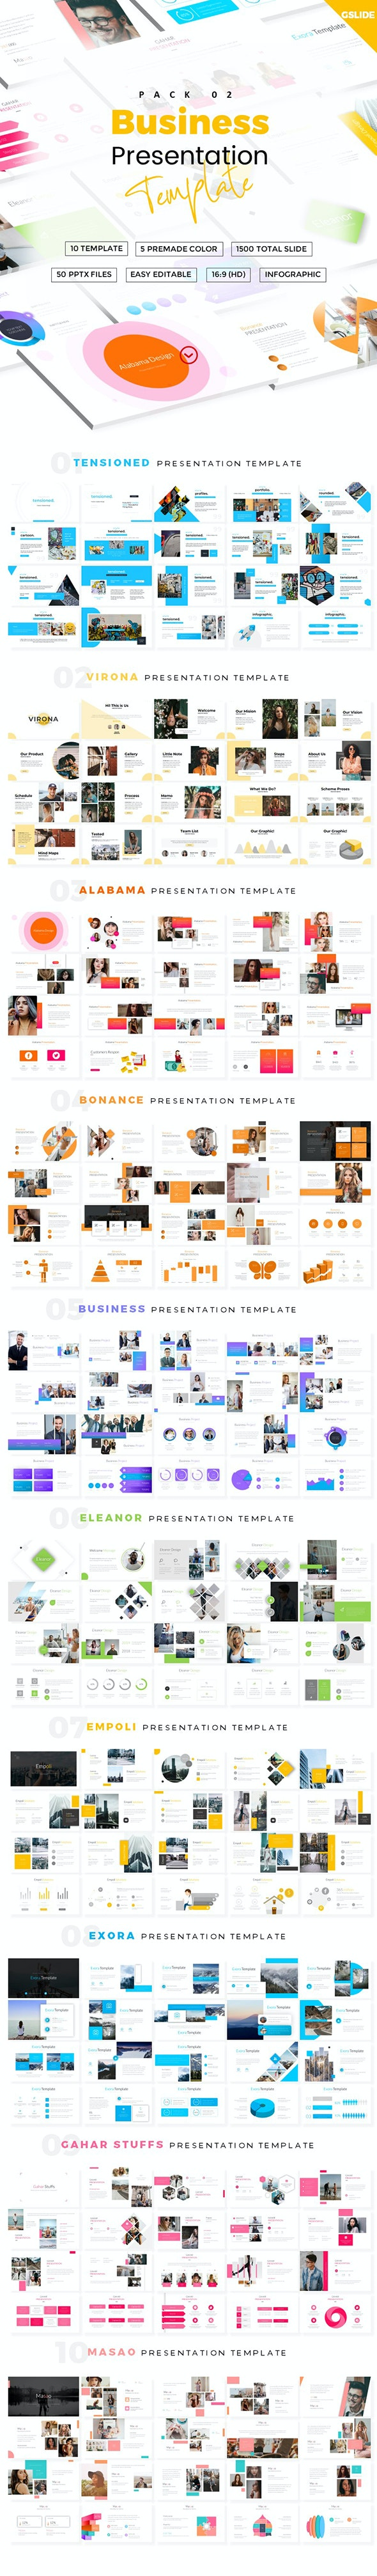 Business GoogleSlides Template Pack - Google Slides Presentation Templates